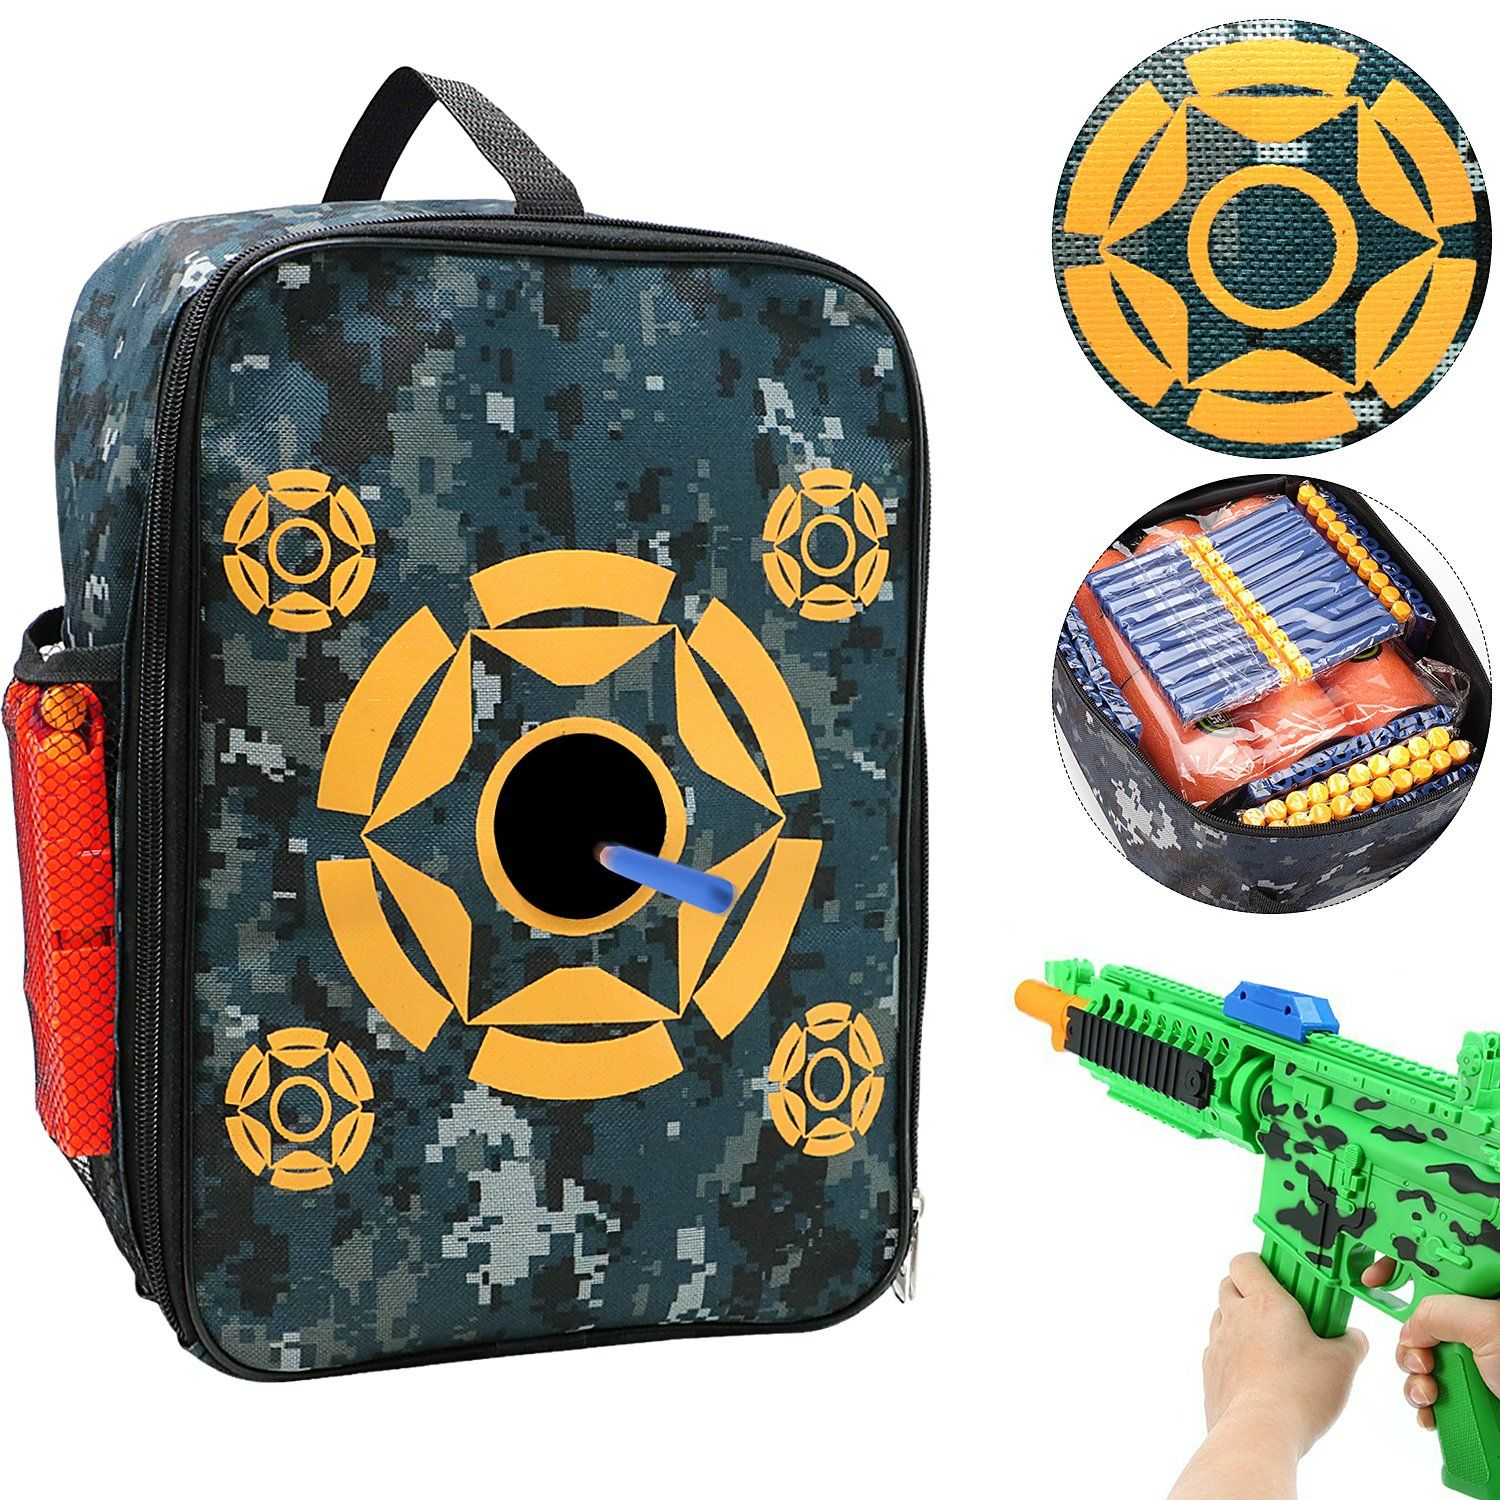 Target Pouch Storage Carry Equipment Bag for Nerf N-strike Elite   Mega    Rival Series d4fe32529